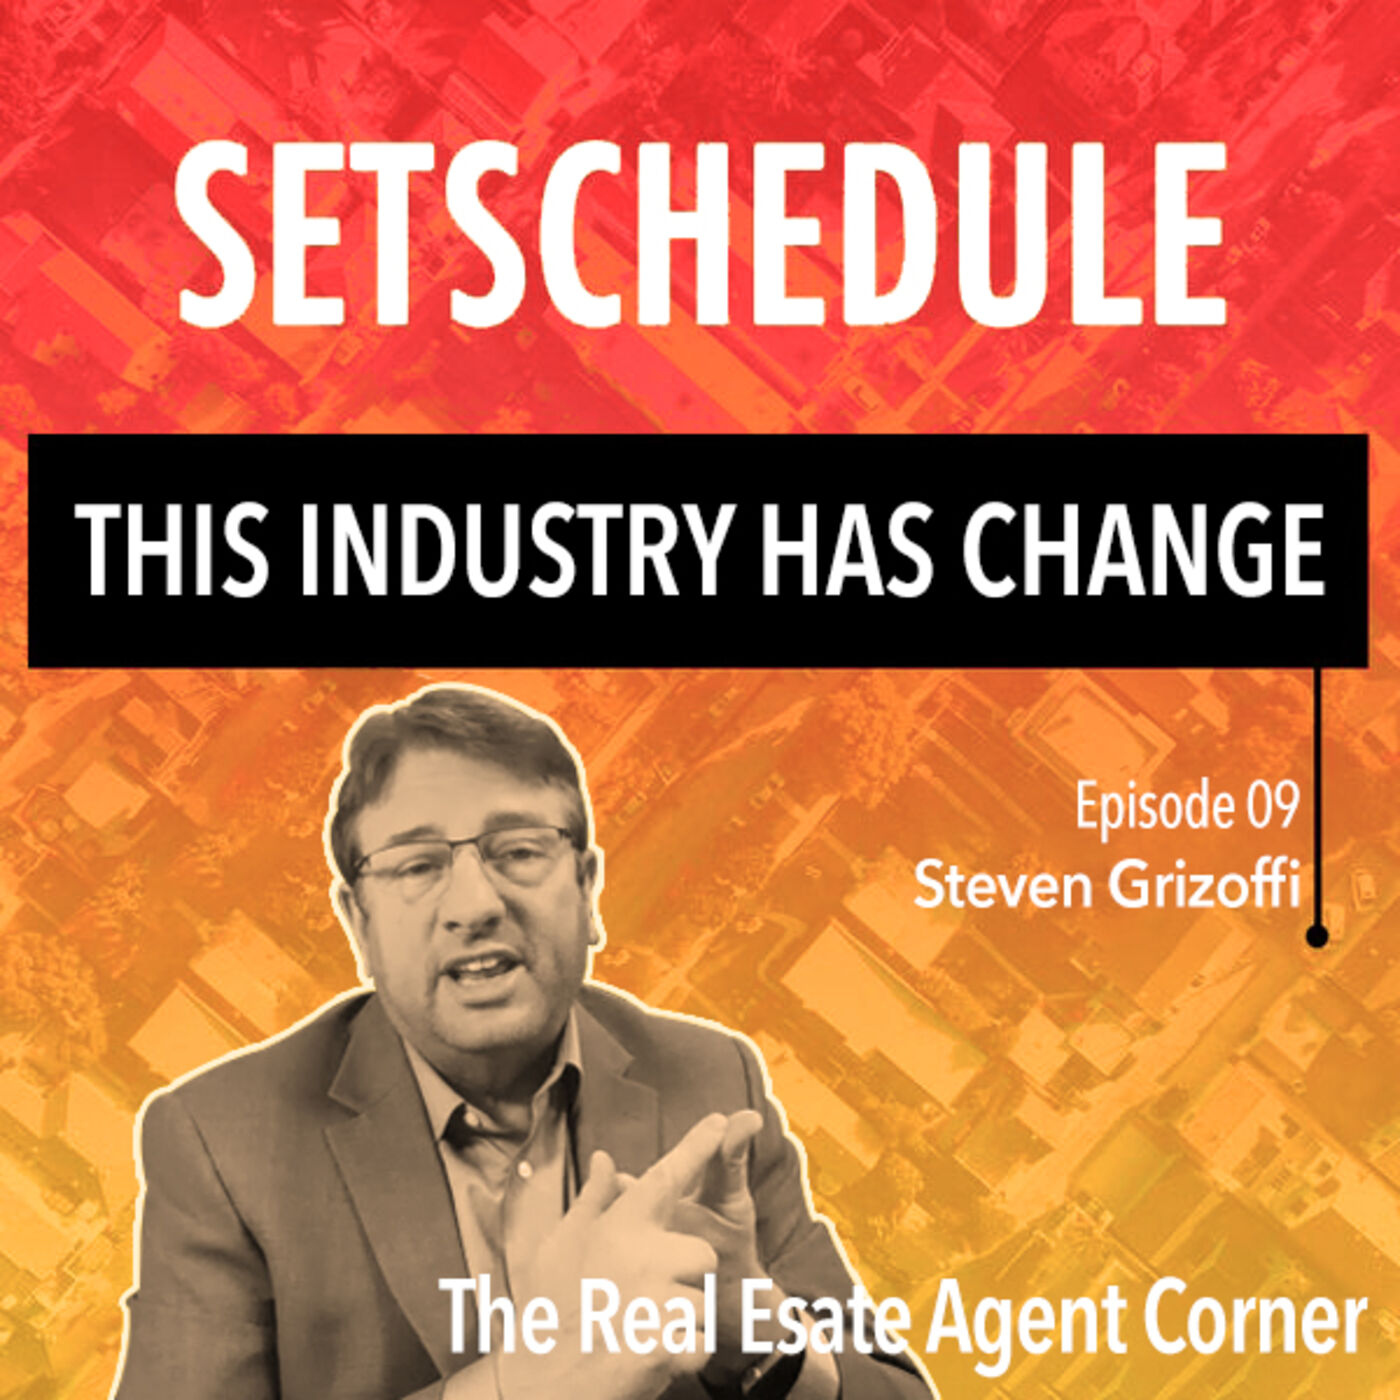 Technology changes this industry - Steven Grizoffi